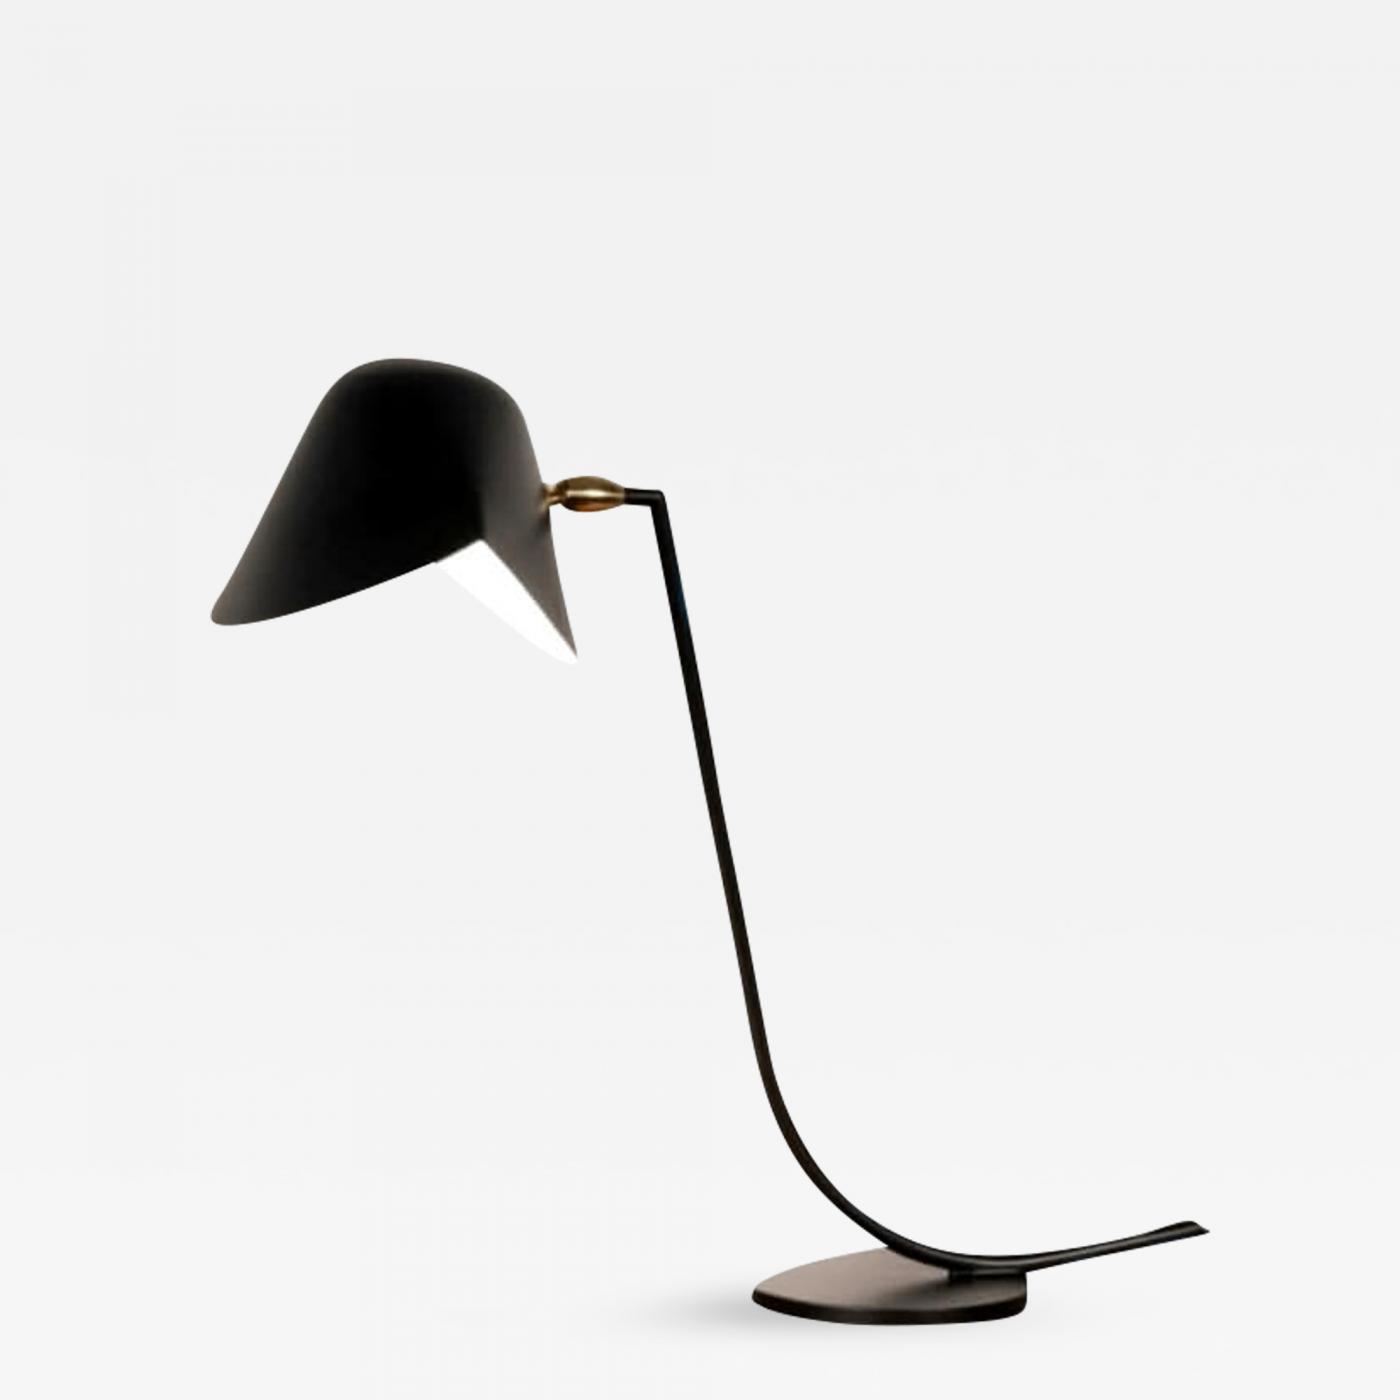 Listings / Furniture / Lighting / Table Lamps · Serge Mouille ...